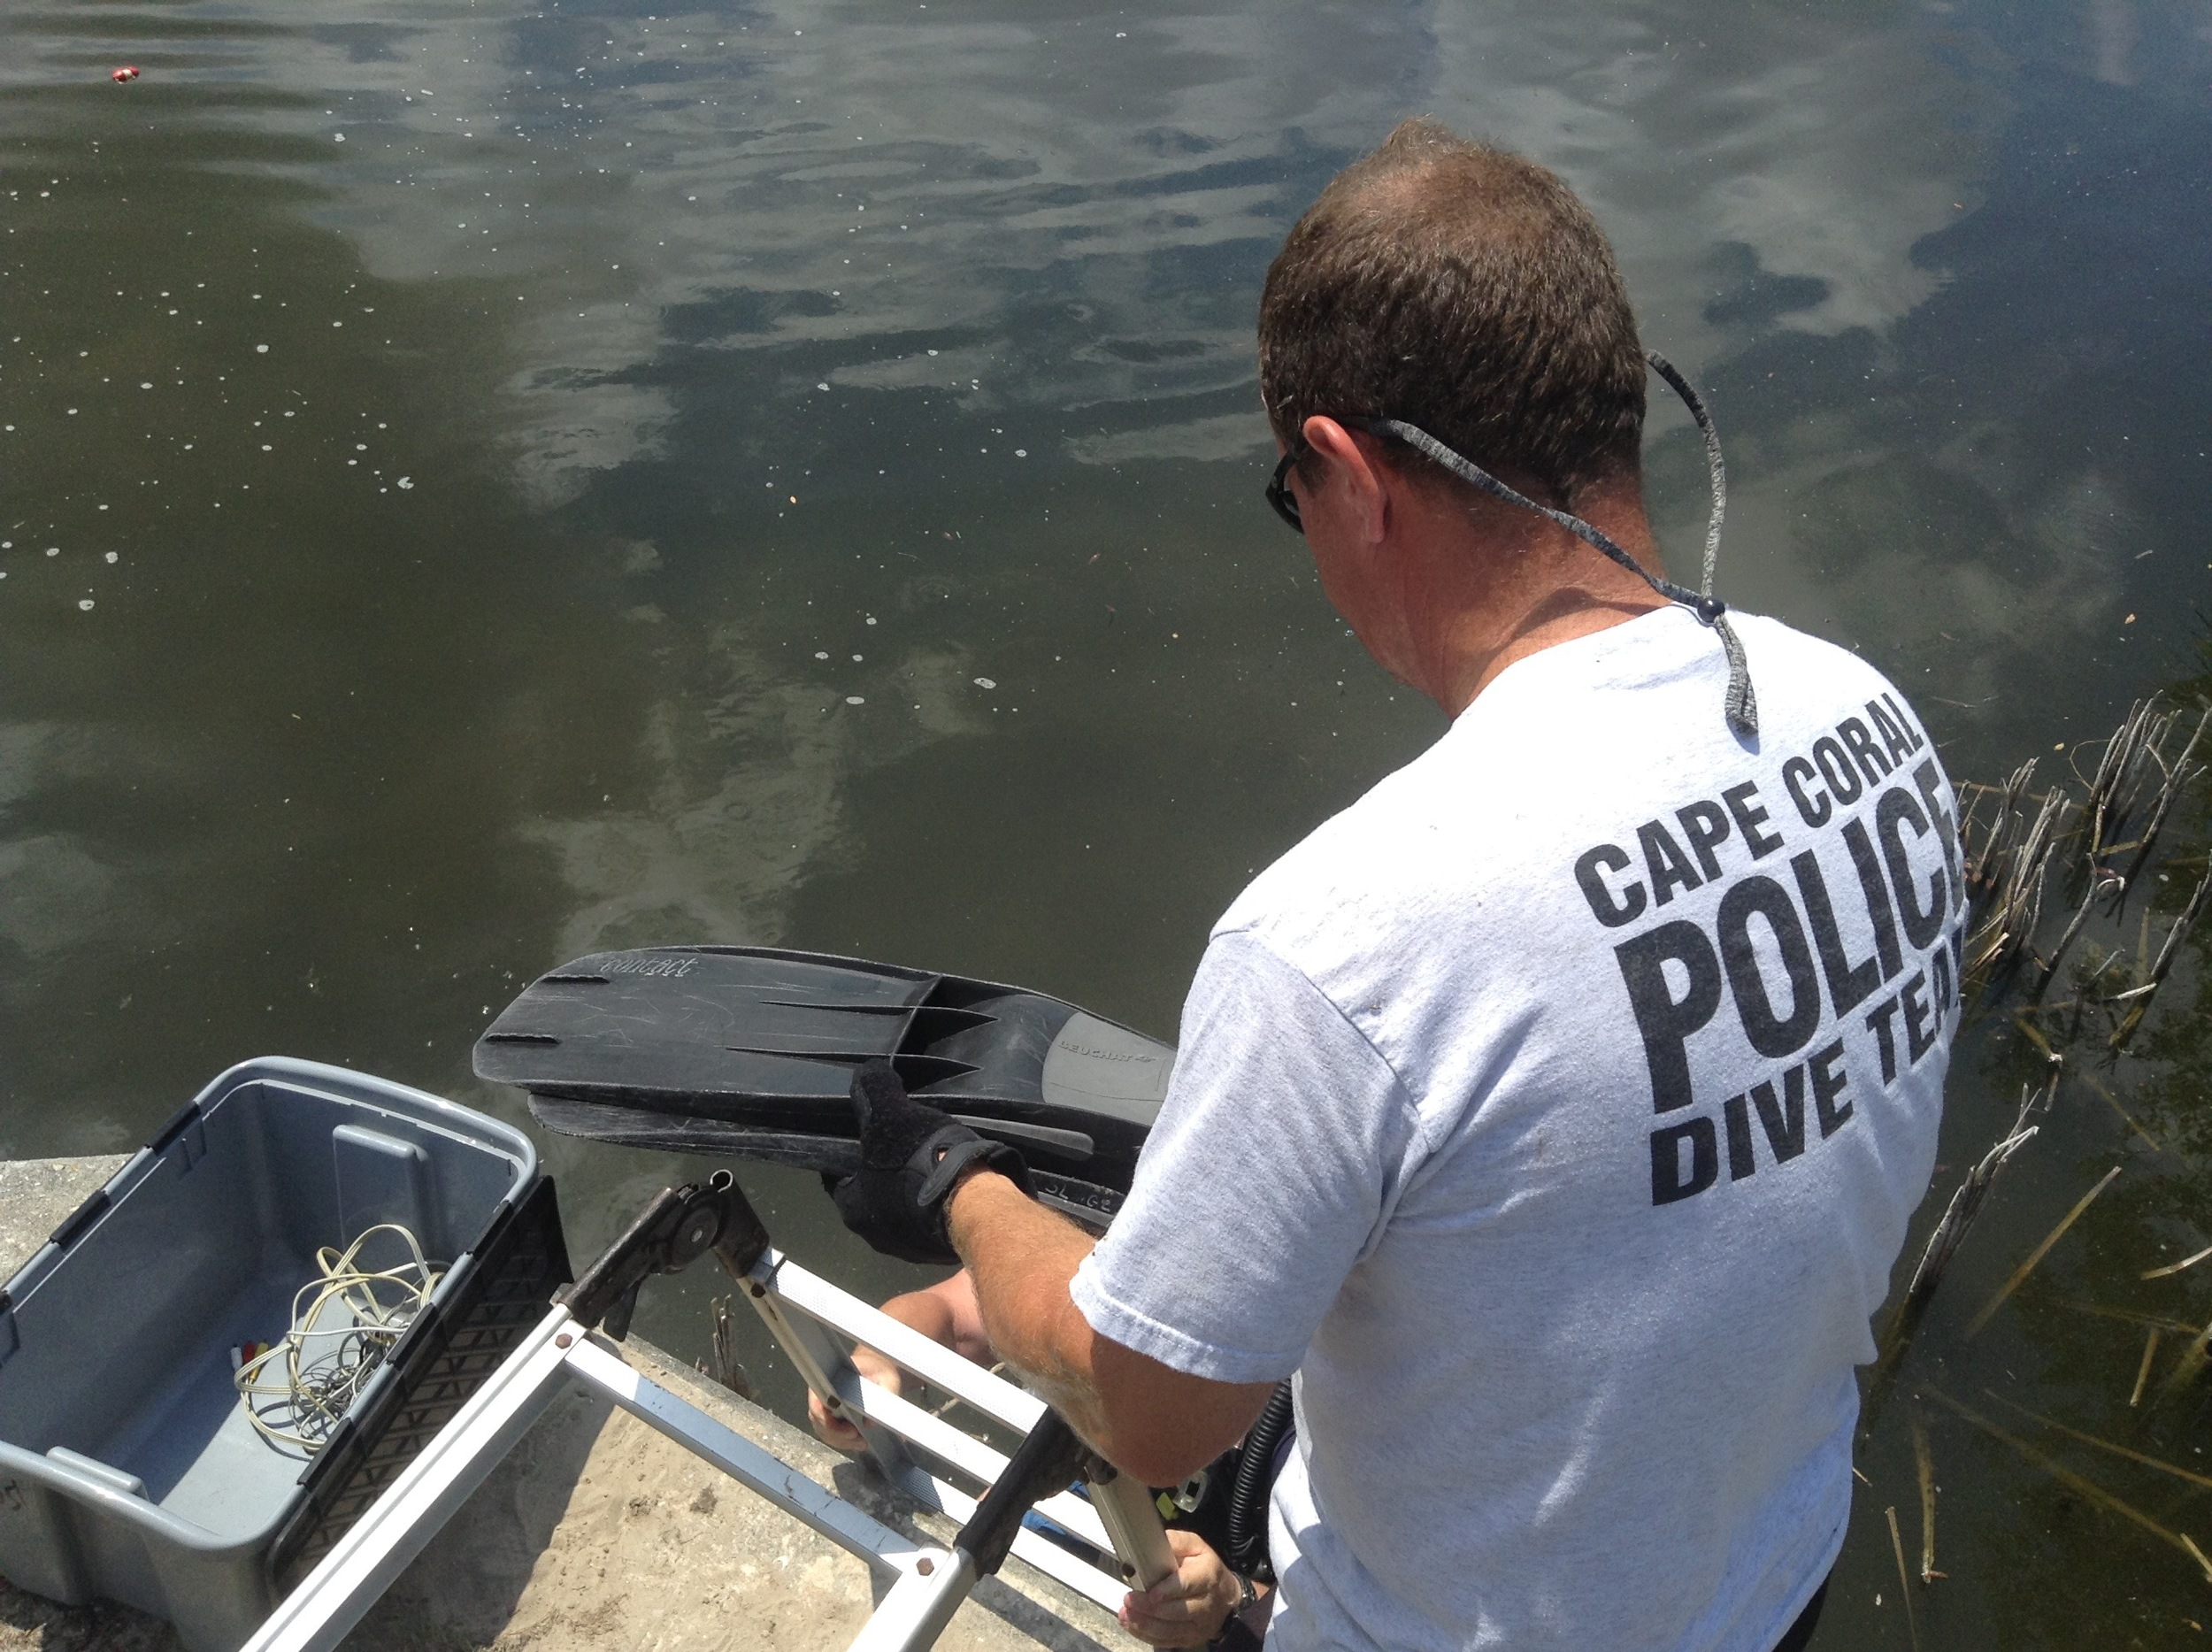 PHOTO: Cpl. Howard Post assists another diver into the water and is about to hand him his flippers. (Photo Courtesy of Cape Coral Police Department)